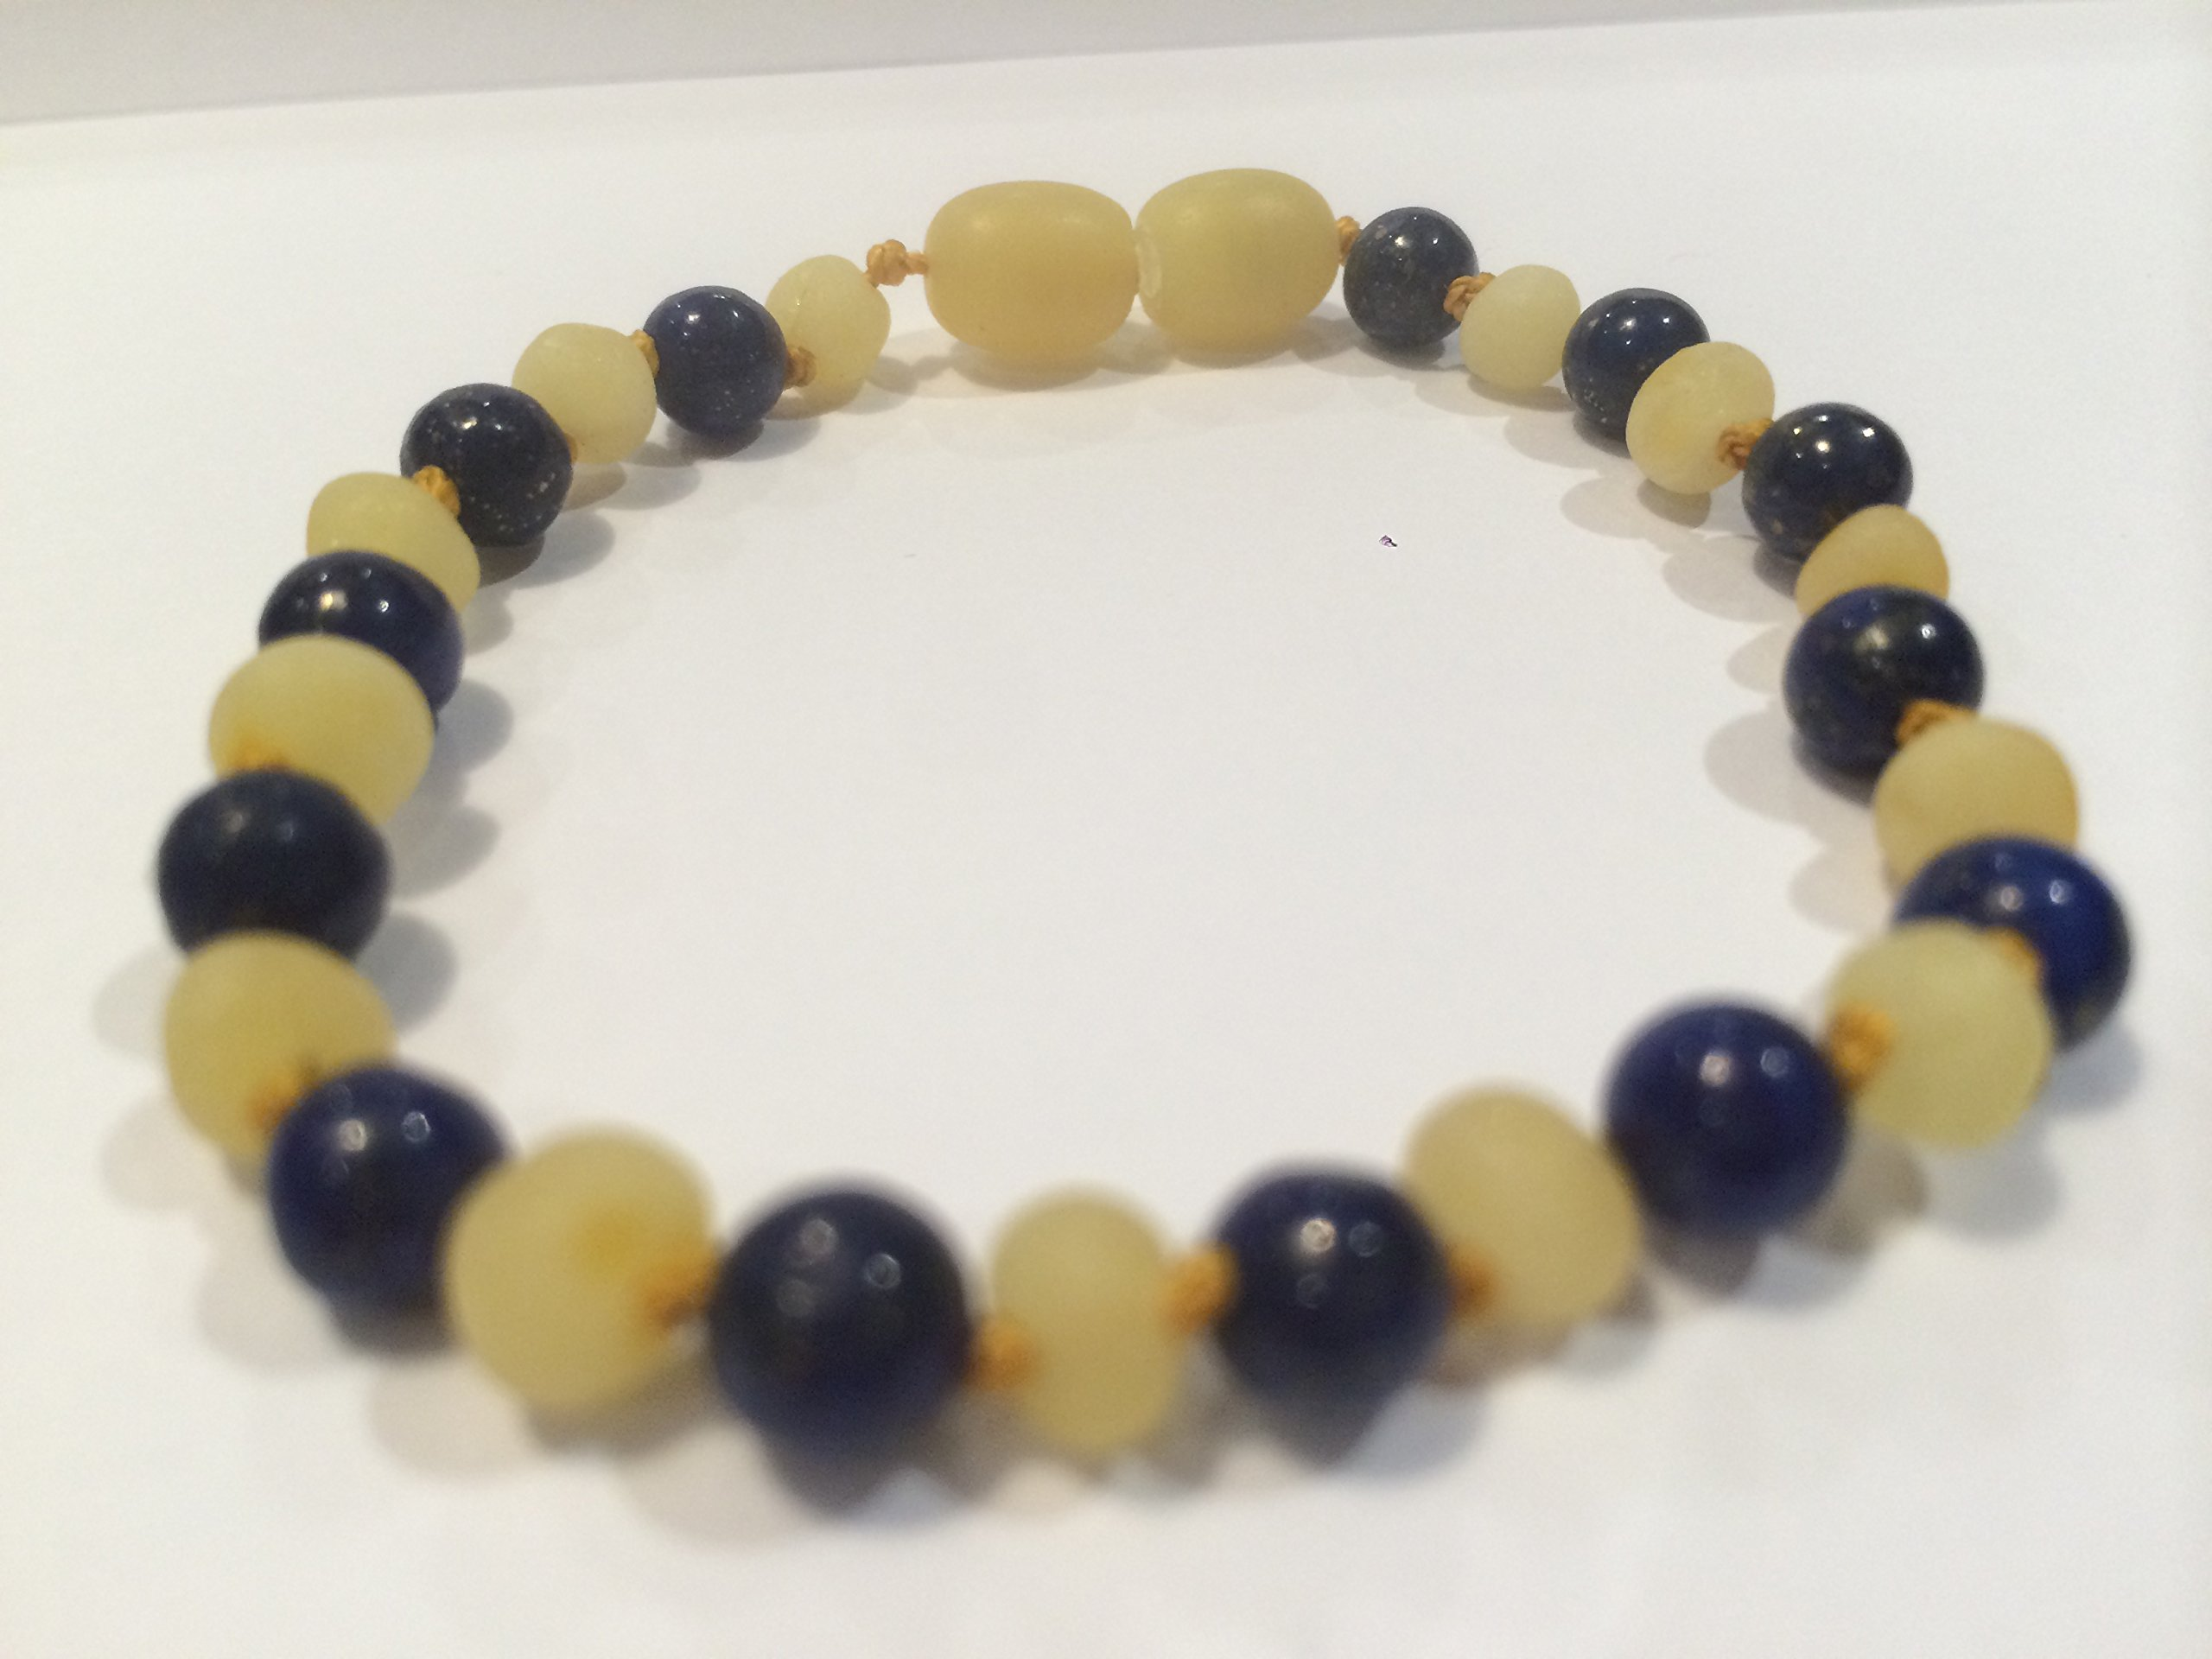 ADHD Raw Milk Unpolished Baltic Amber Bracelet 8 Inch with Lapis Lazuli for Adults or big kids 8 by Baltic Amber Bracelet